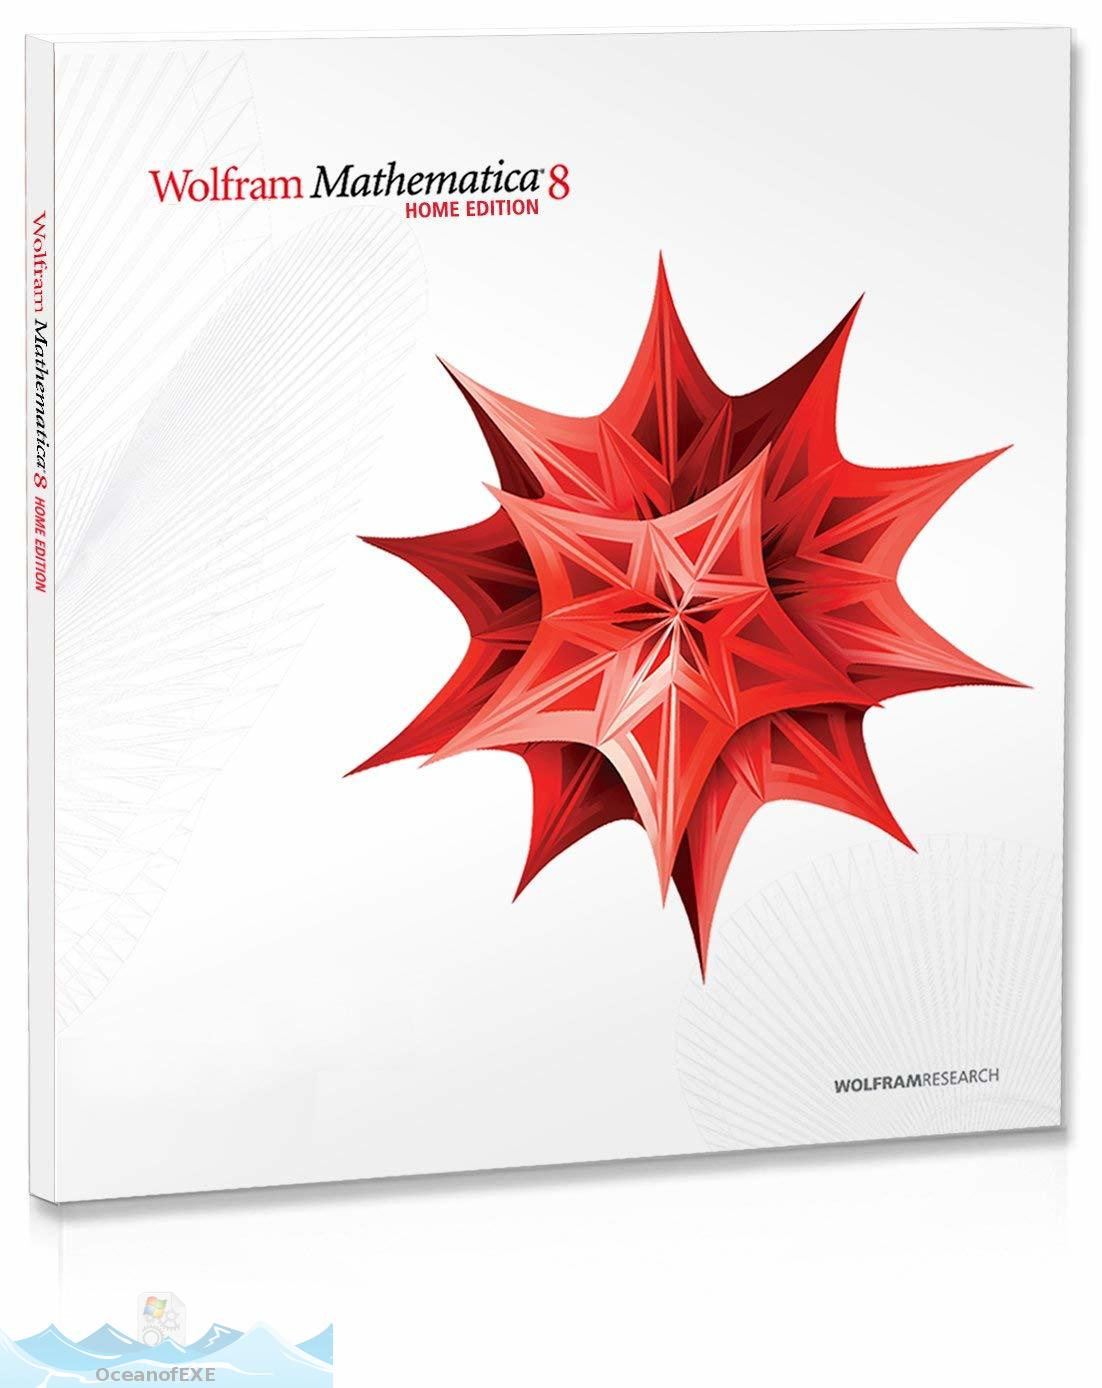 Wolfram Mathematica 7 Free Download-OceanofEXE.com